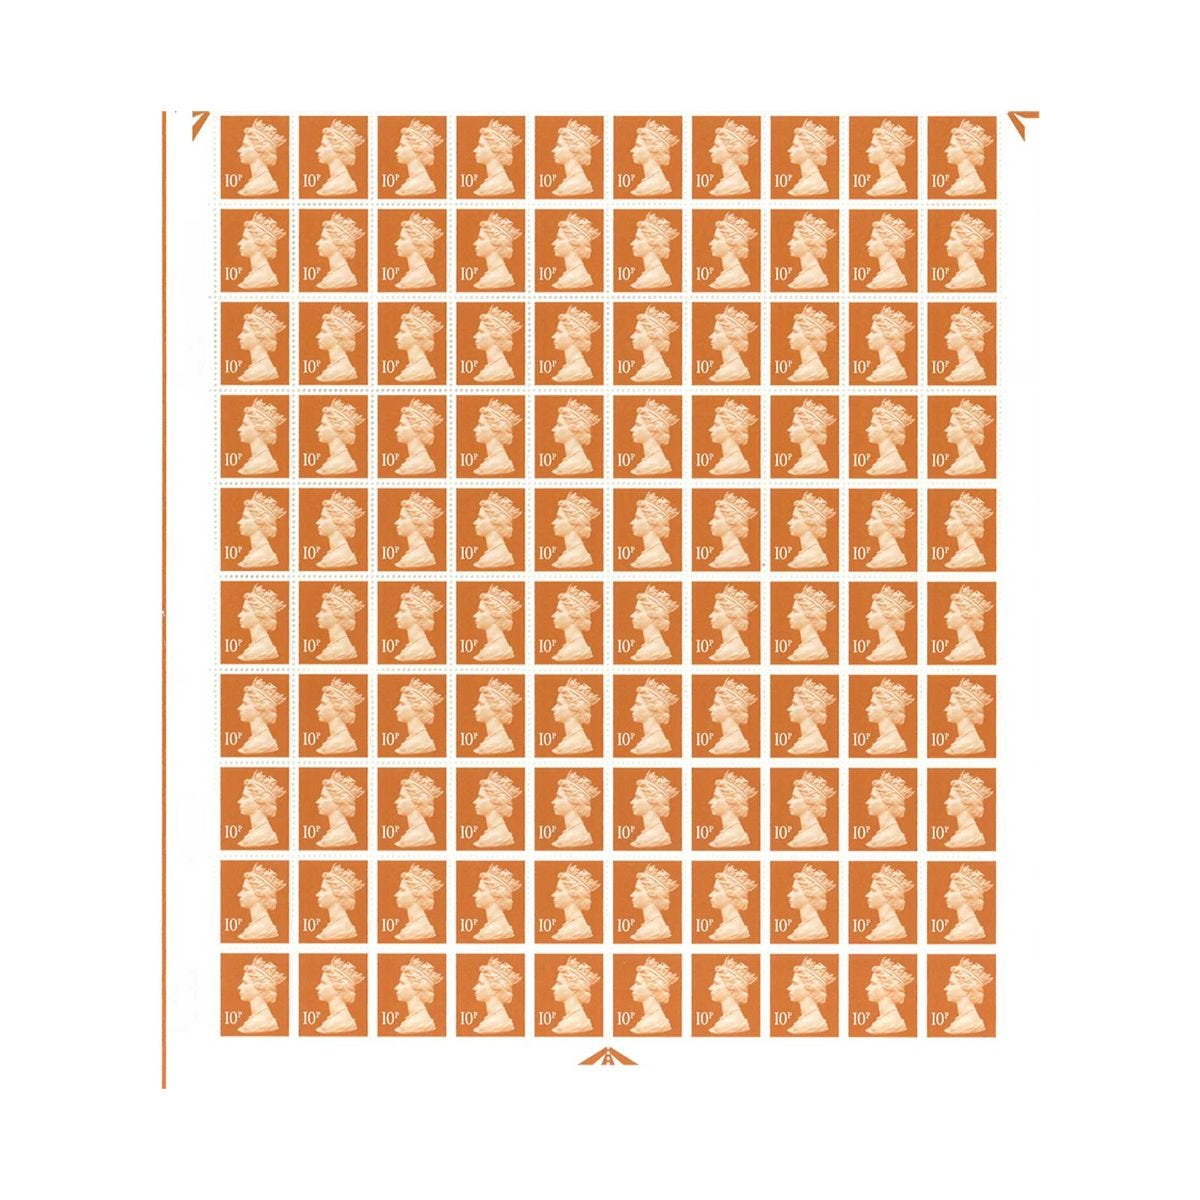 Image of 10p Postage Stamps Sheet of 100 *